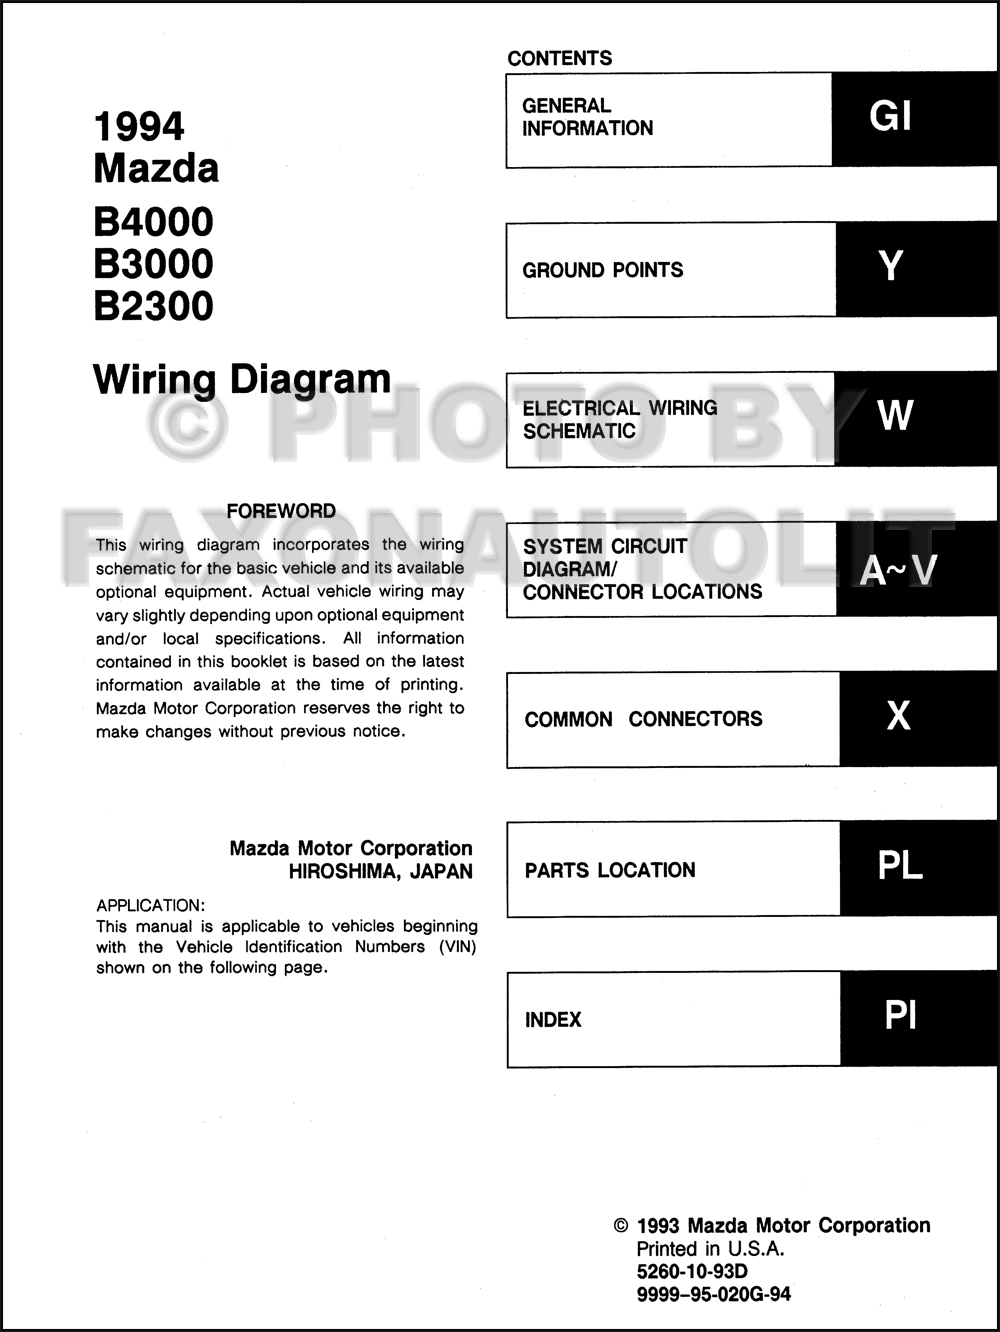 1994MazdaB4000B3000B23000OWD TOC 1994 mazda b4000 b3000 b2300 pickup truck wiring diagram manual 99 Mazda B4000 Fuse Diagram at alyssarenee.co